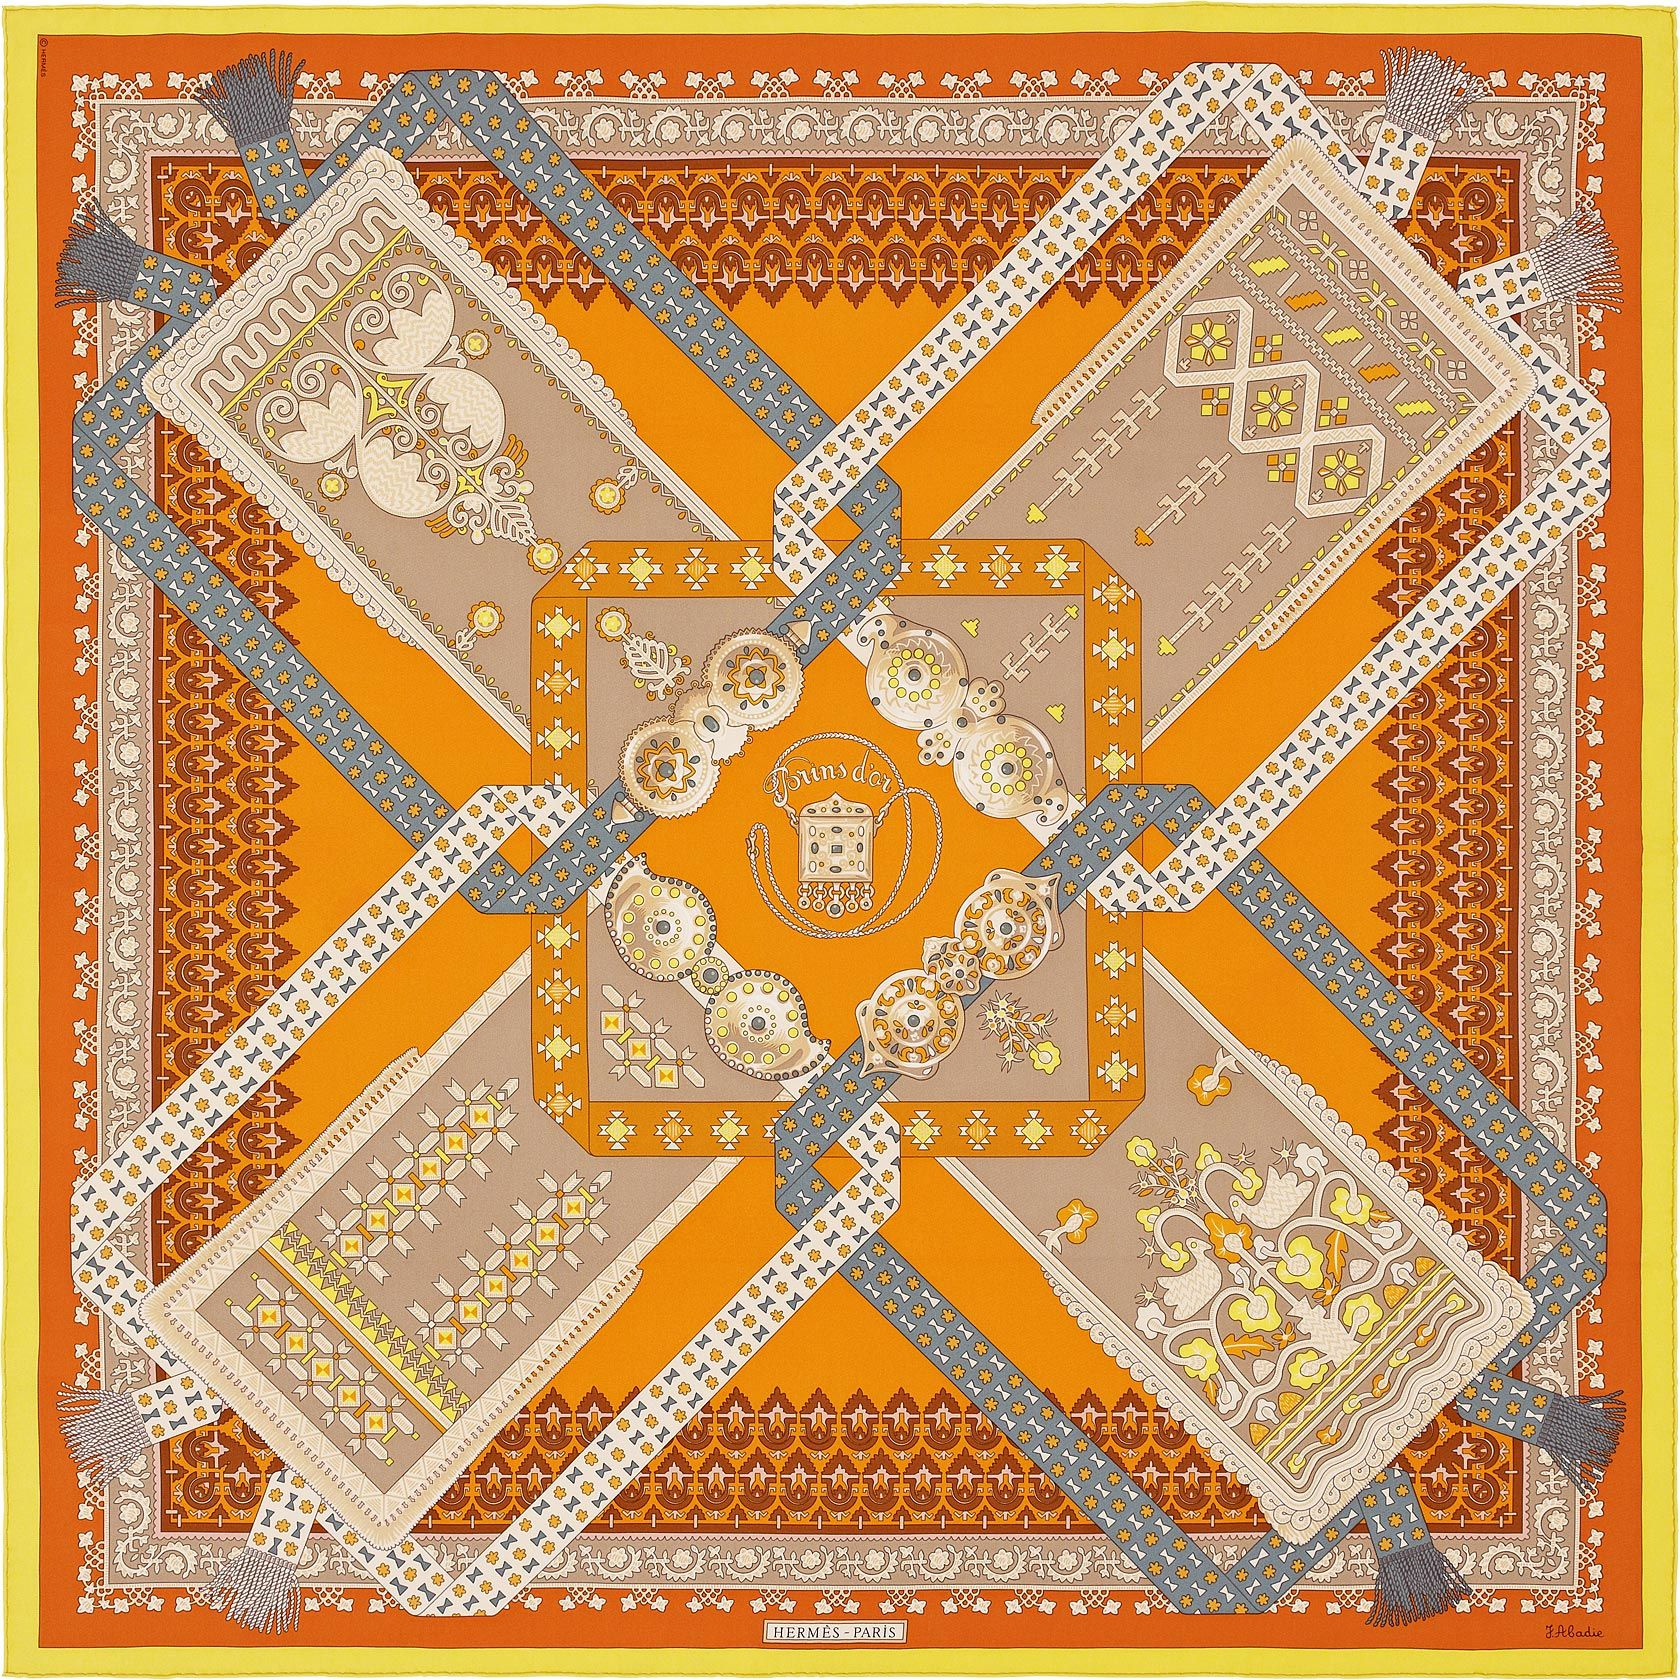 Scarf 90 Hermès | Brins d'Or by Julie Abadie DESIGN HISTORY : Embroidered with gold or woollen thread, decorated with stylised animal and flower motifs, geometric patterns or arabesques, these four aprons pay tribute to the people of the shores of the Aegean sea. At the centre of the design, an amulet set in a square of belt buckles affords protection against evil spirits. The economic expansion of Greece in the 18th century, and sea-faring trade with the other Mediterranean countries…